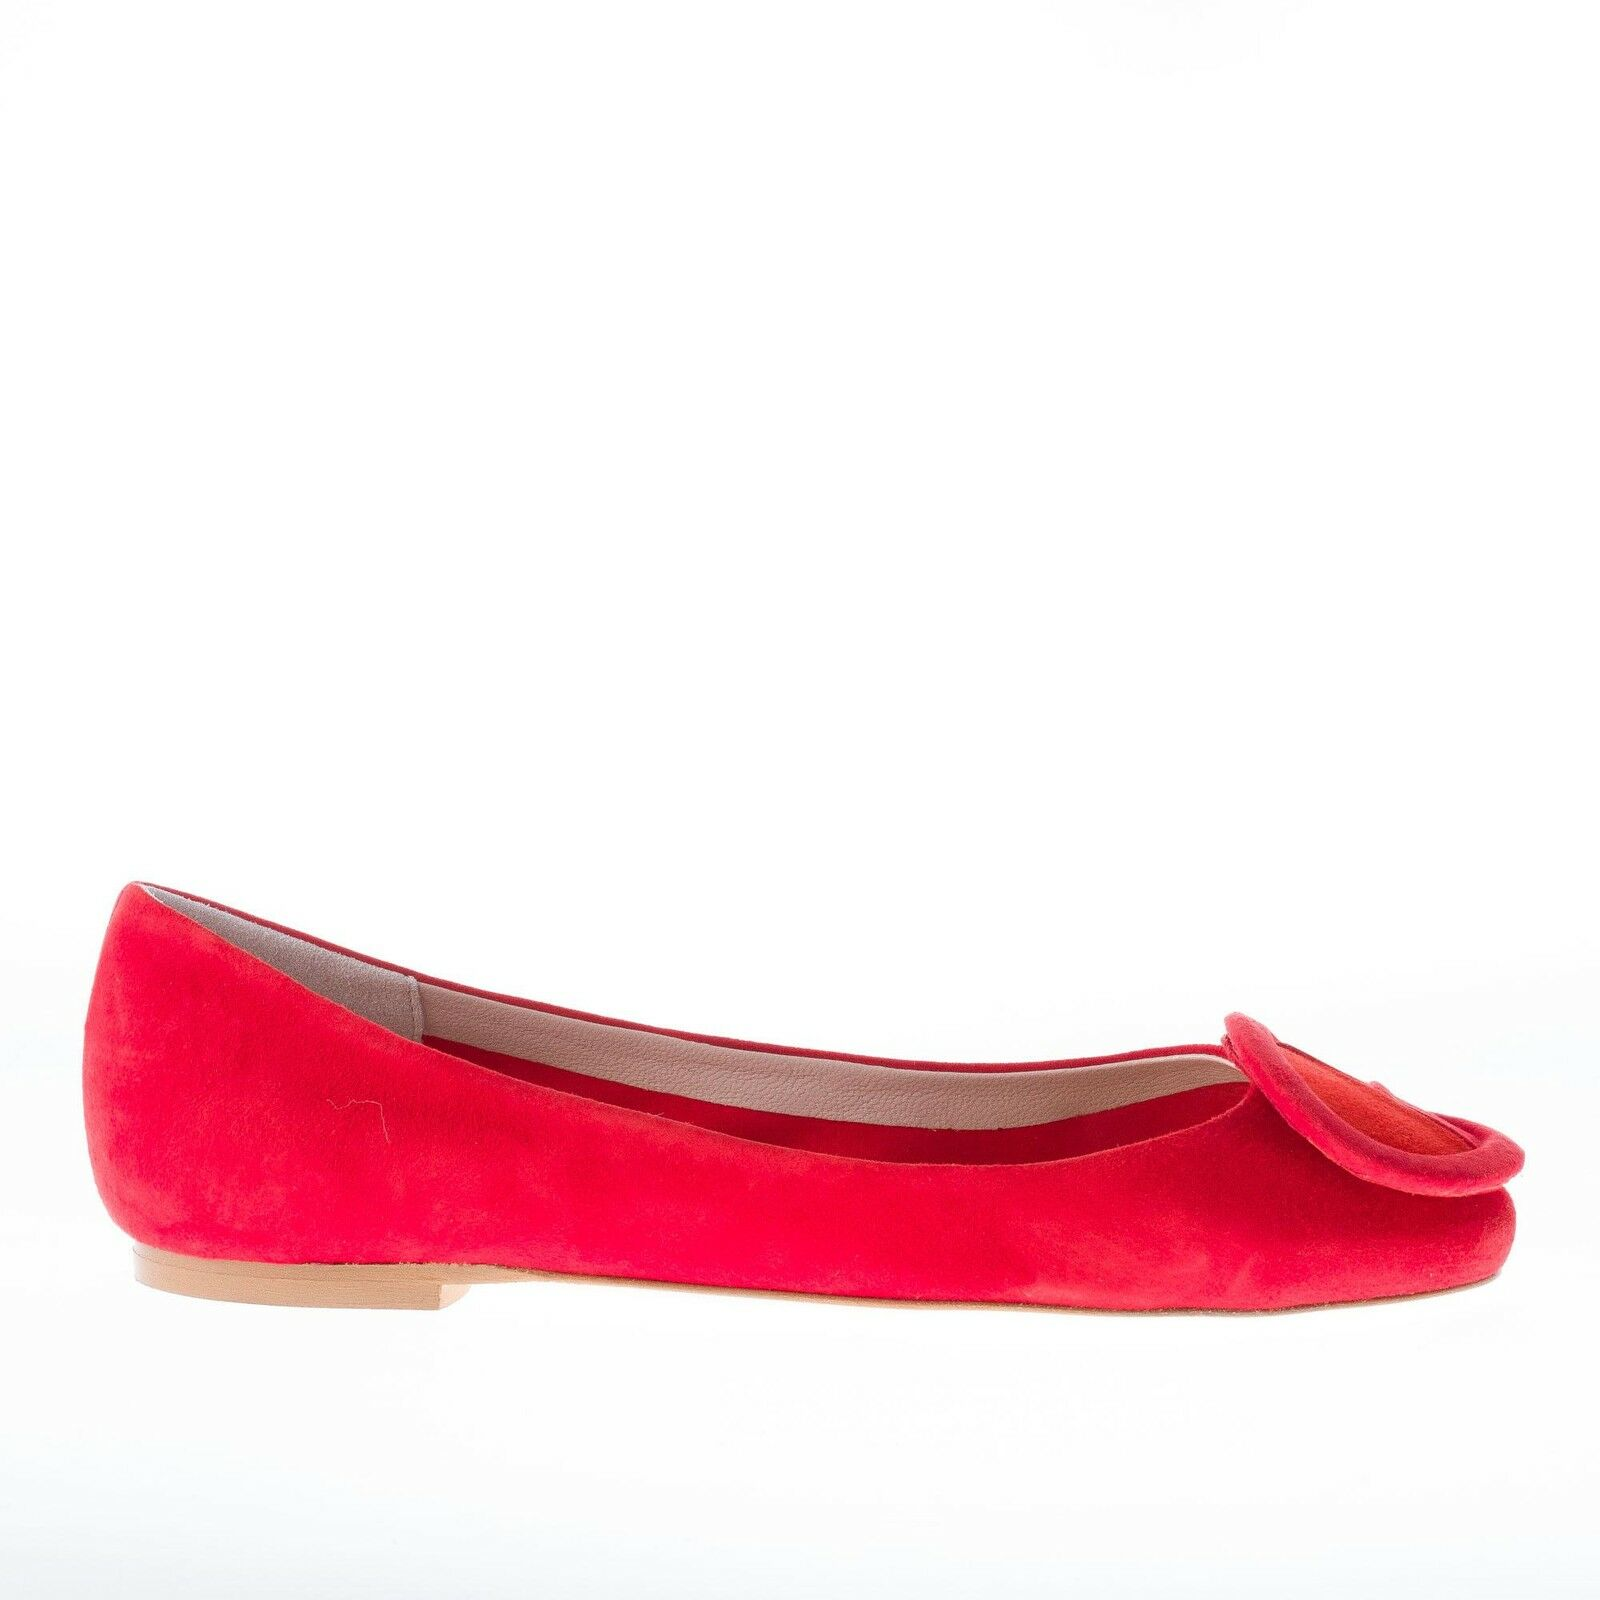 IL BORGO red FIRENZE women shoes red BORGO suede ballet flat with patchwork suede buckle b1dc81